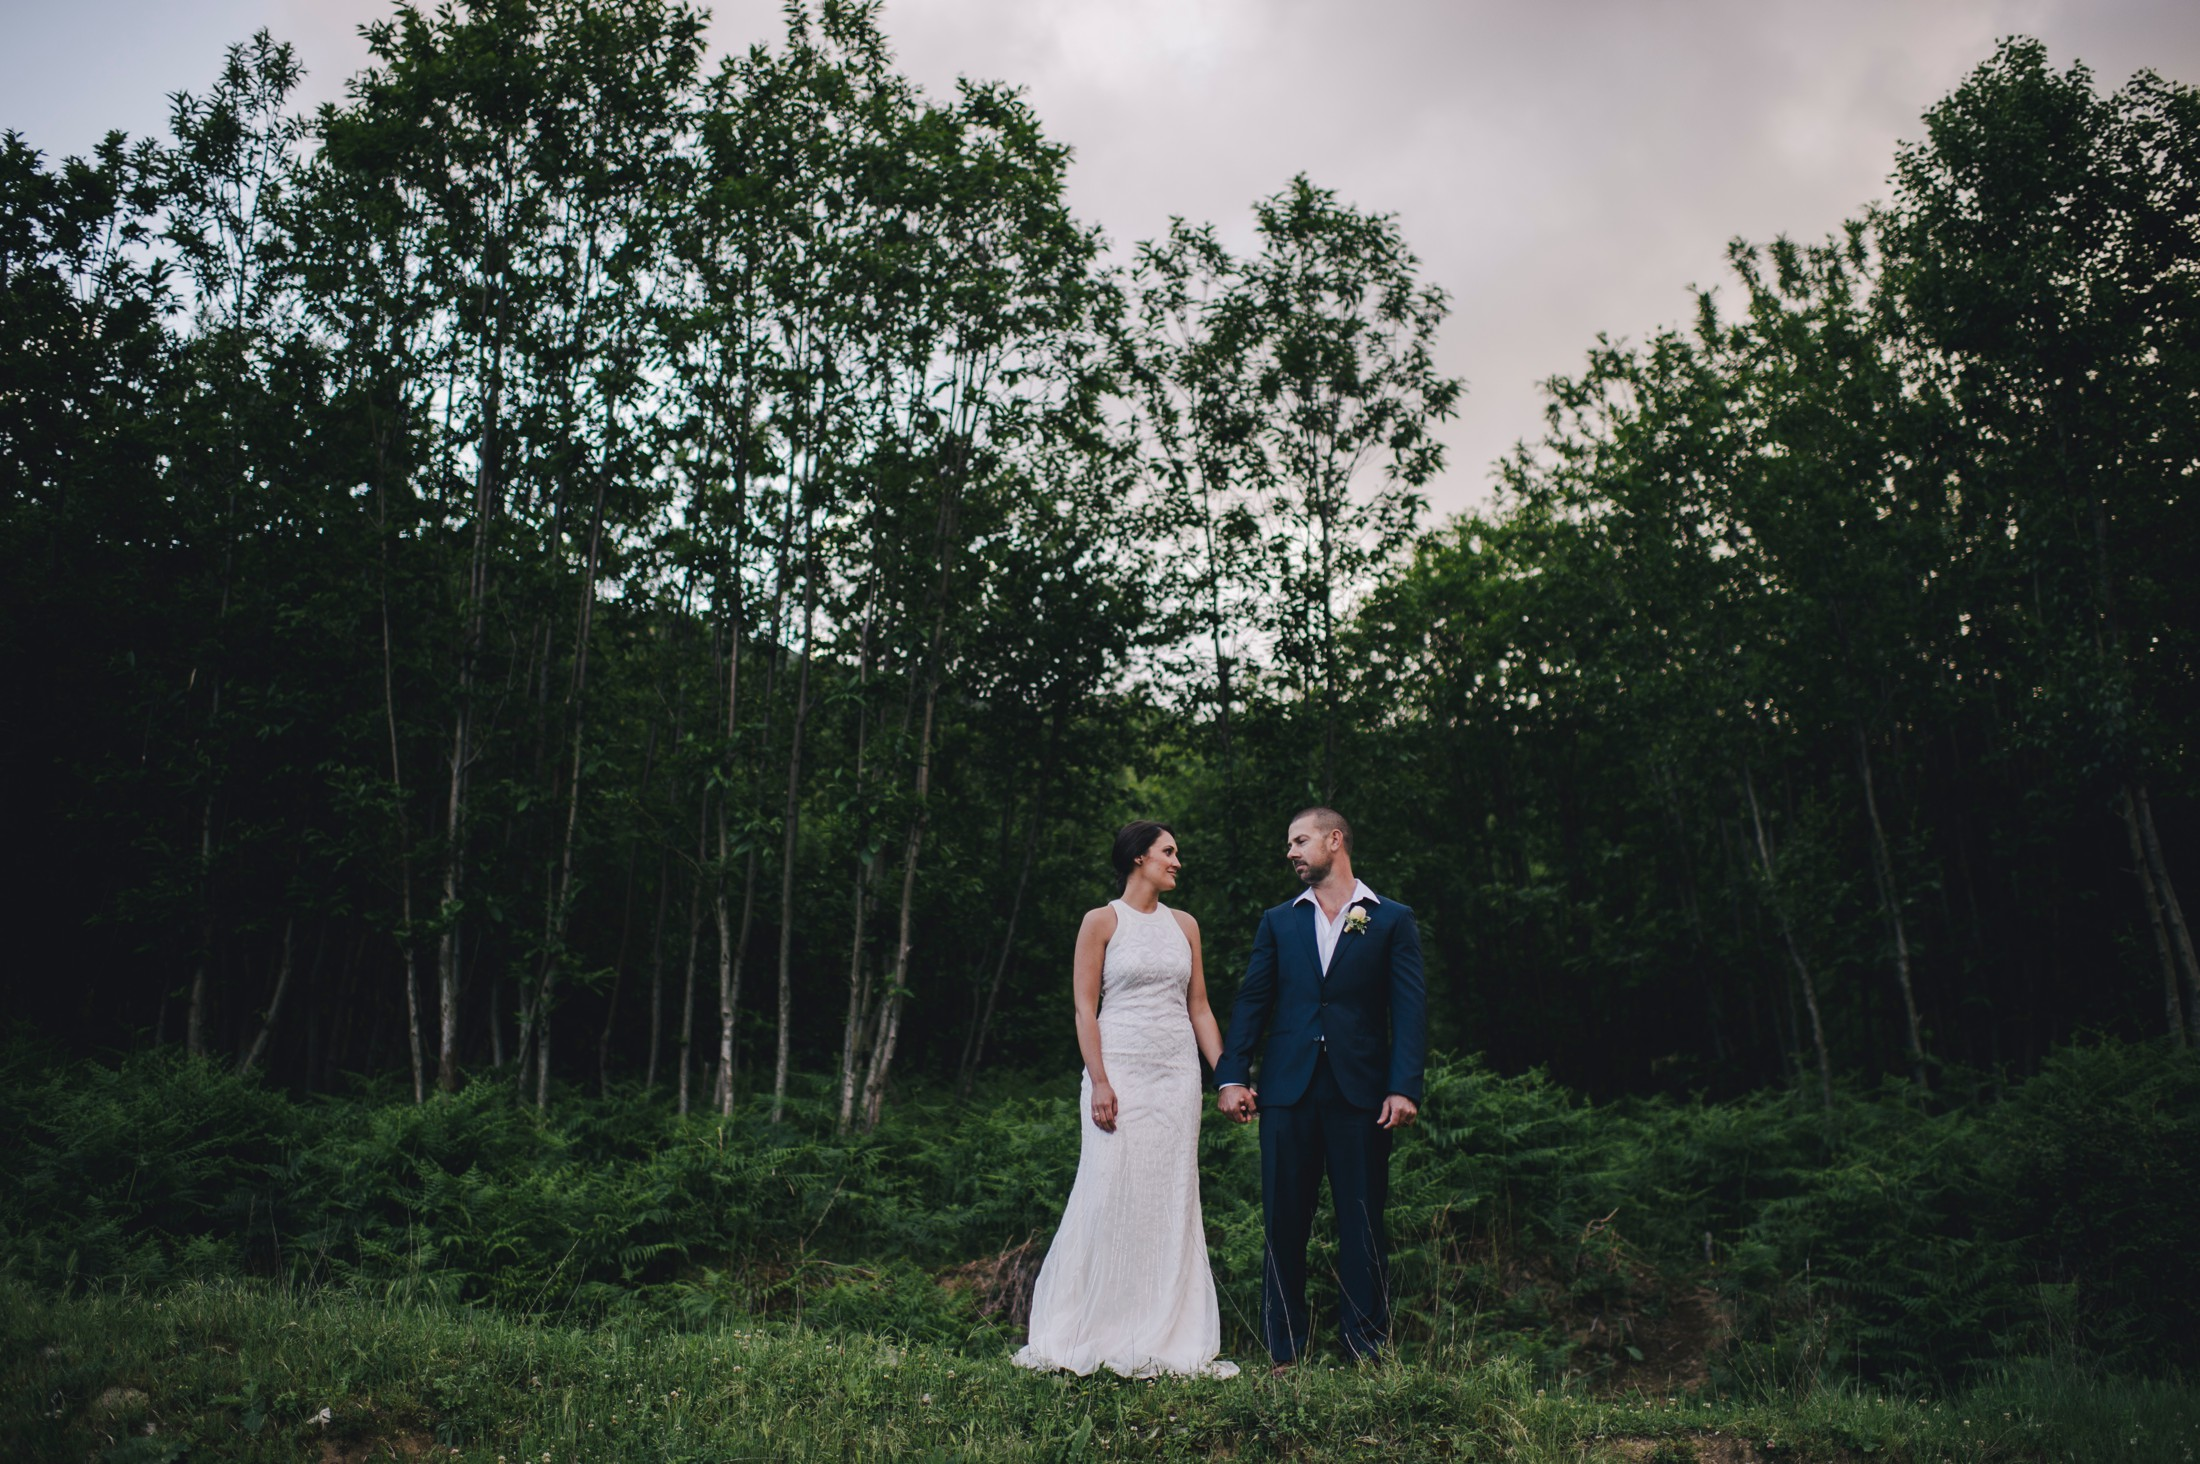 bride and groom's portrait in the nature